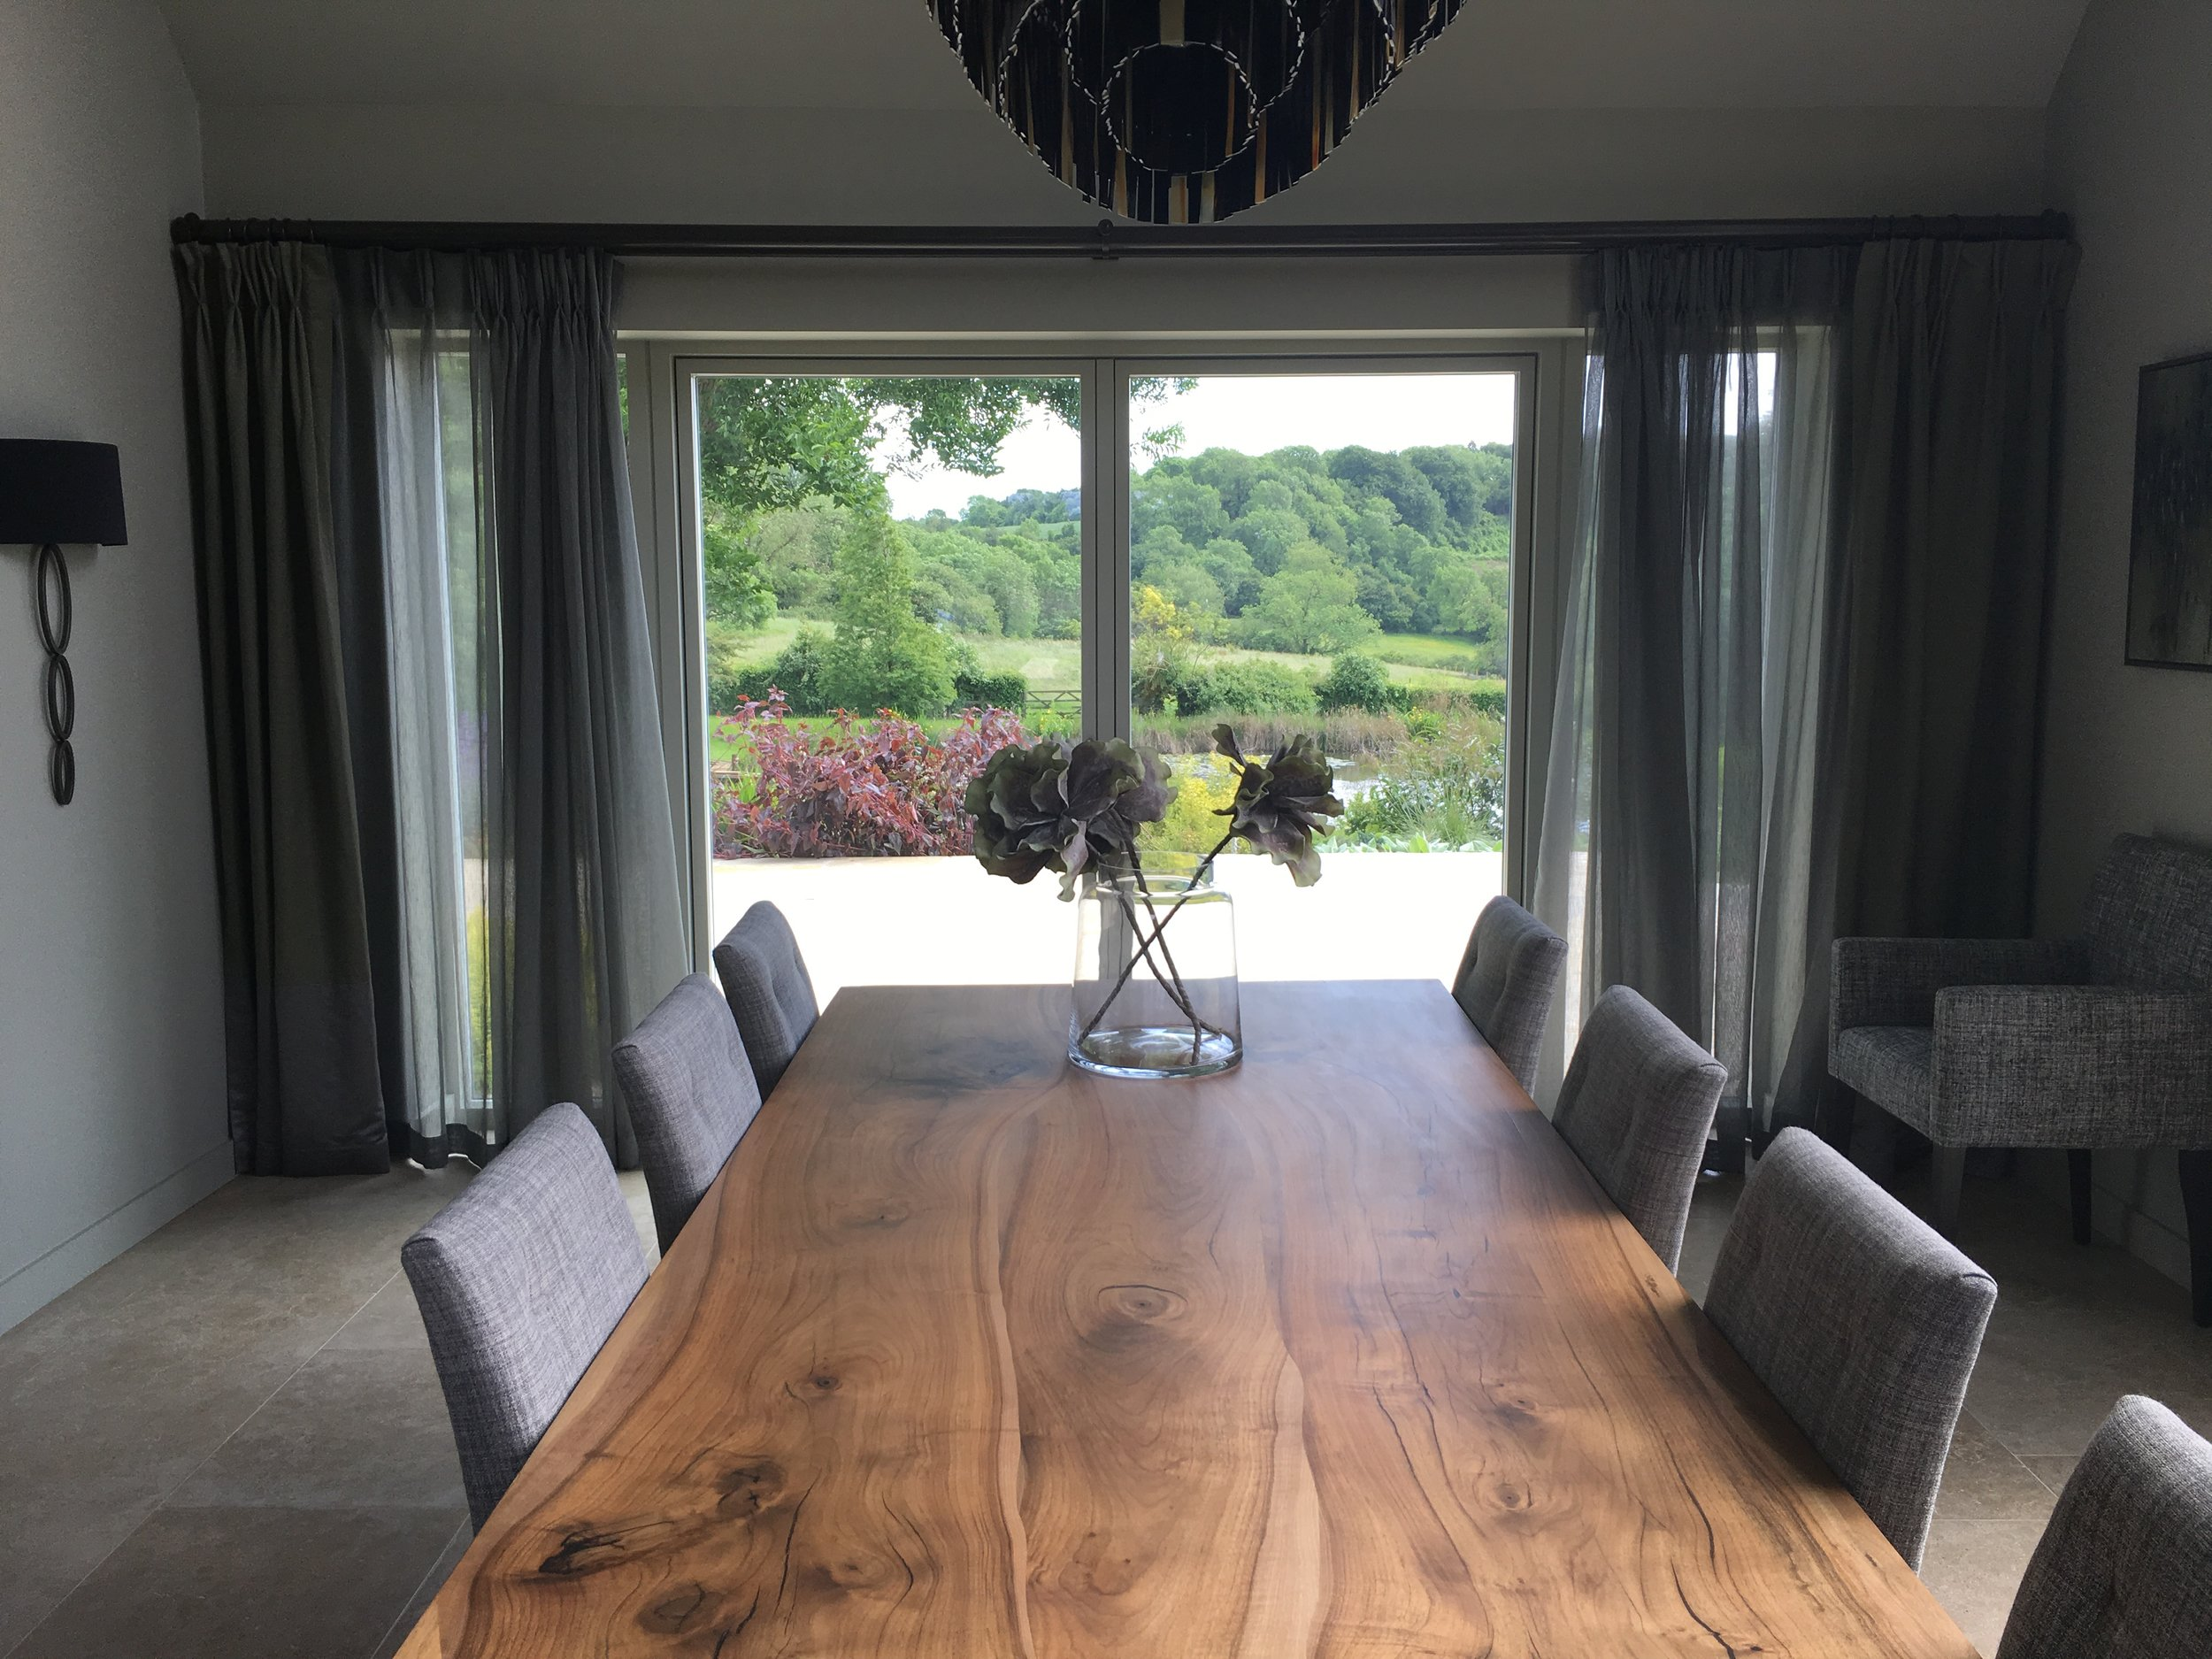 Timber dining table.